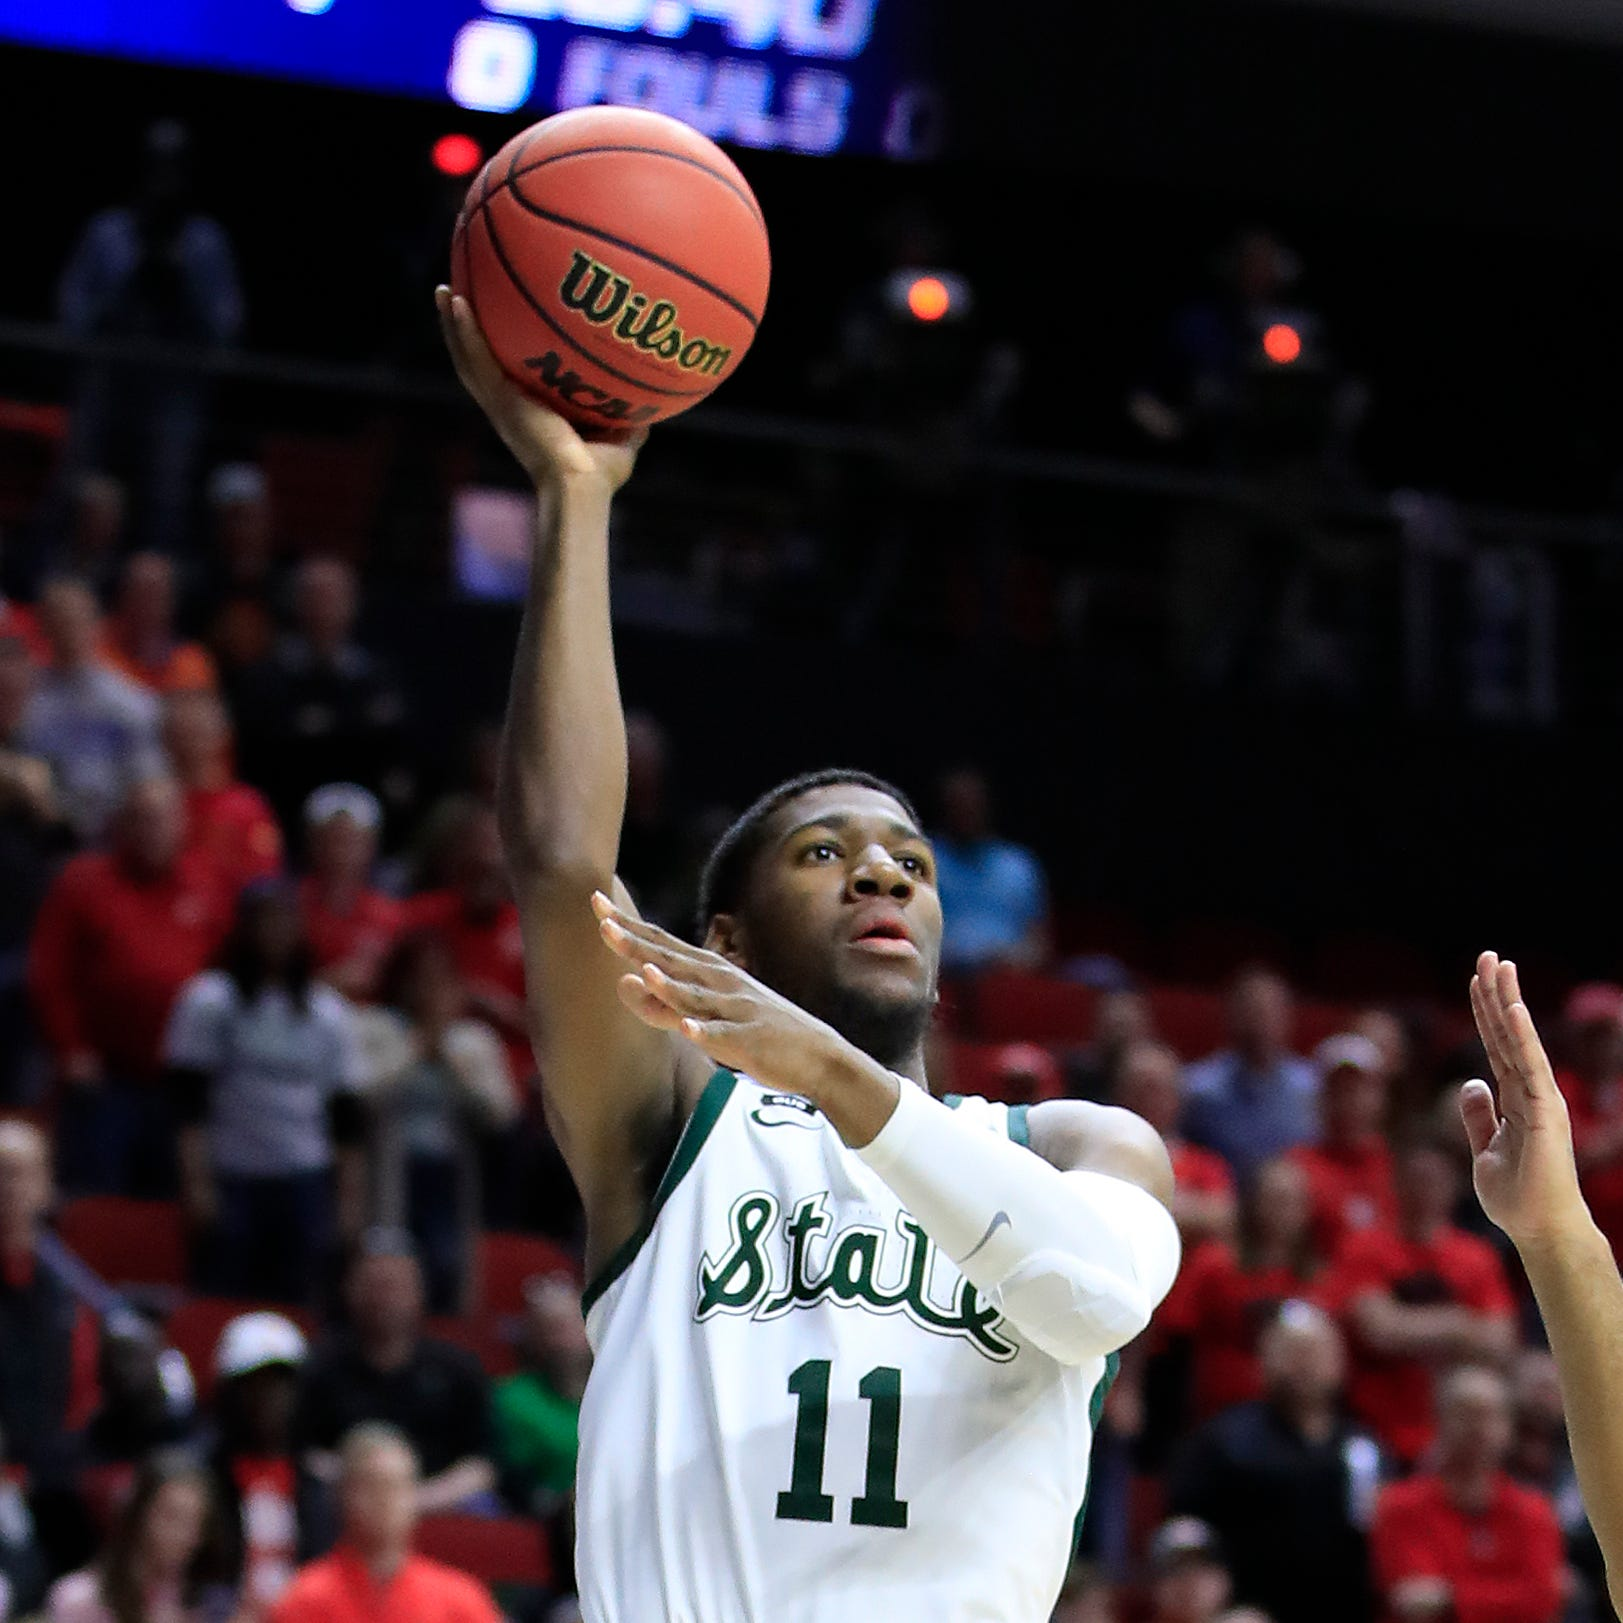 Michigan State survives and fans want to give Aaron Henry a hug